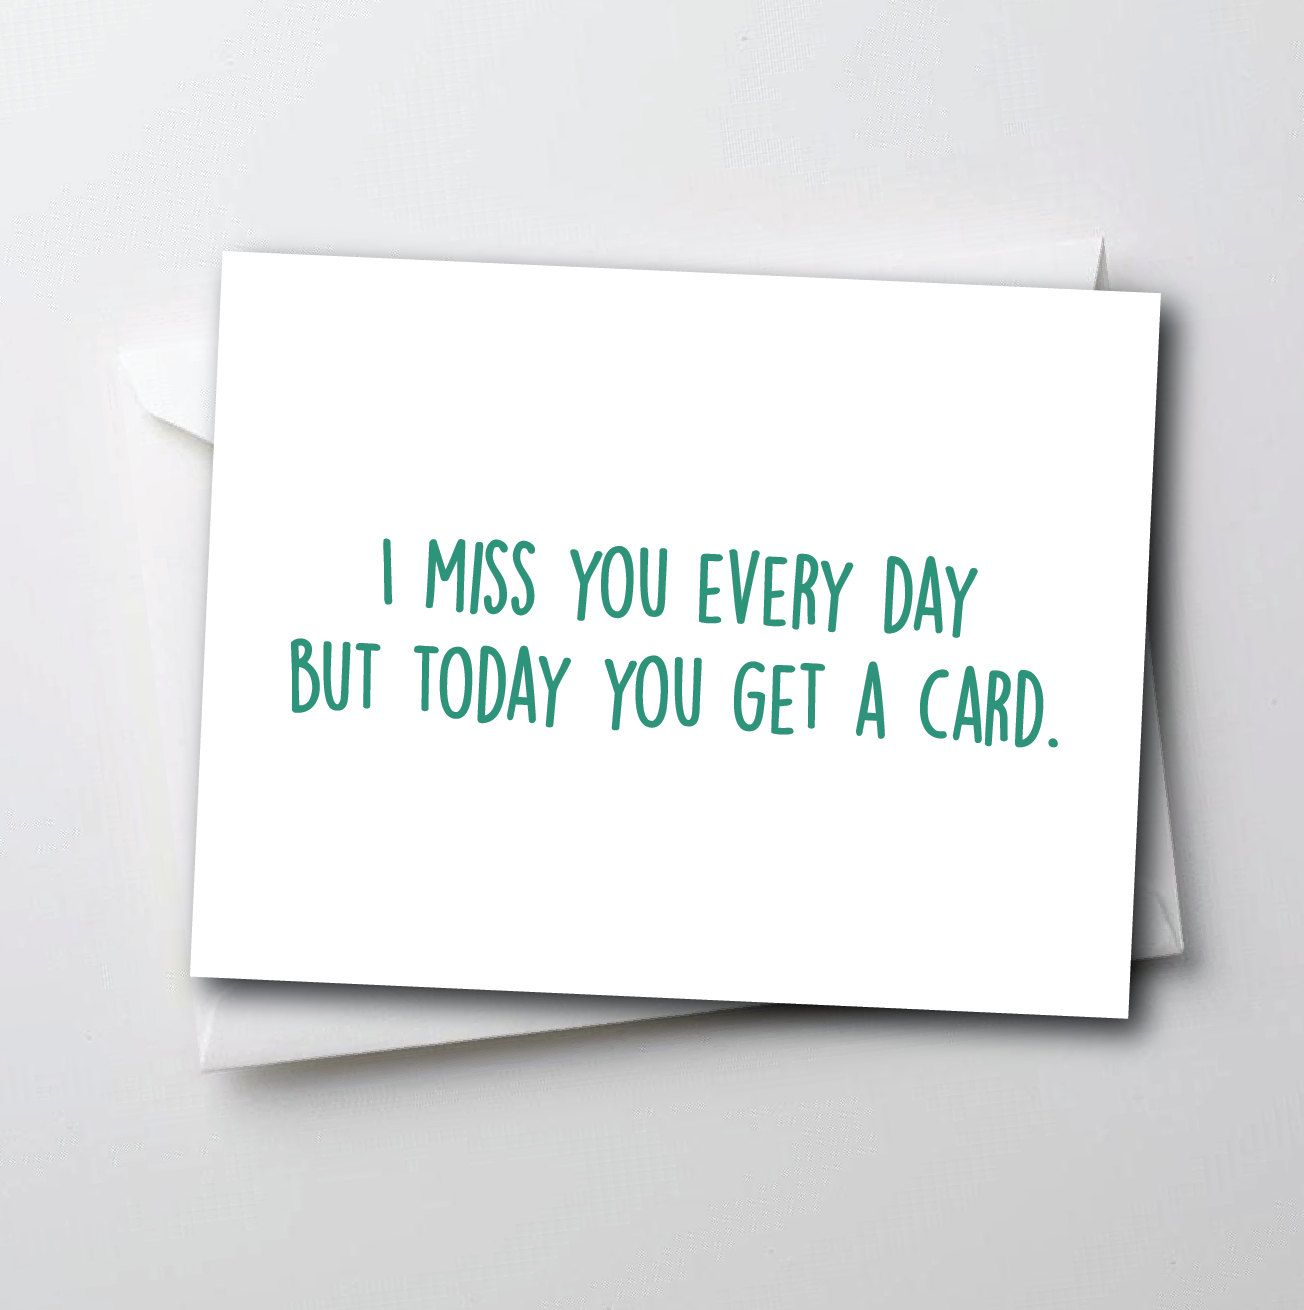 Funny i miss you card i miss you everyday but today you get a card funny i miss you card i miss you everyday but today you get a card kristyandbryce Image collections